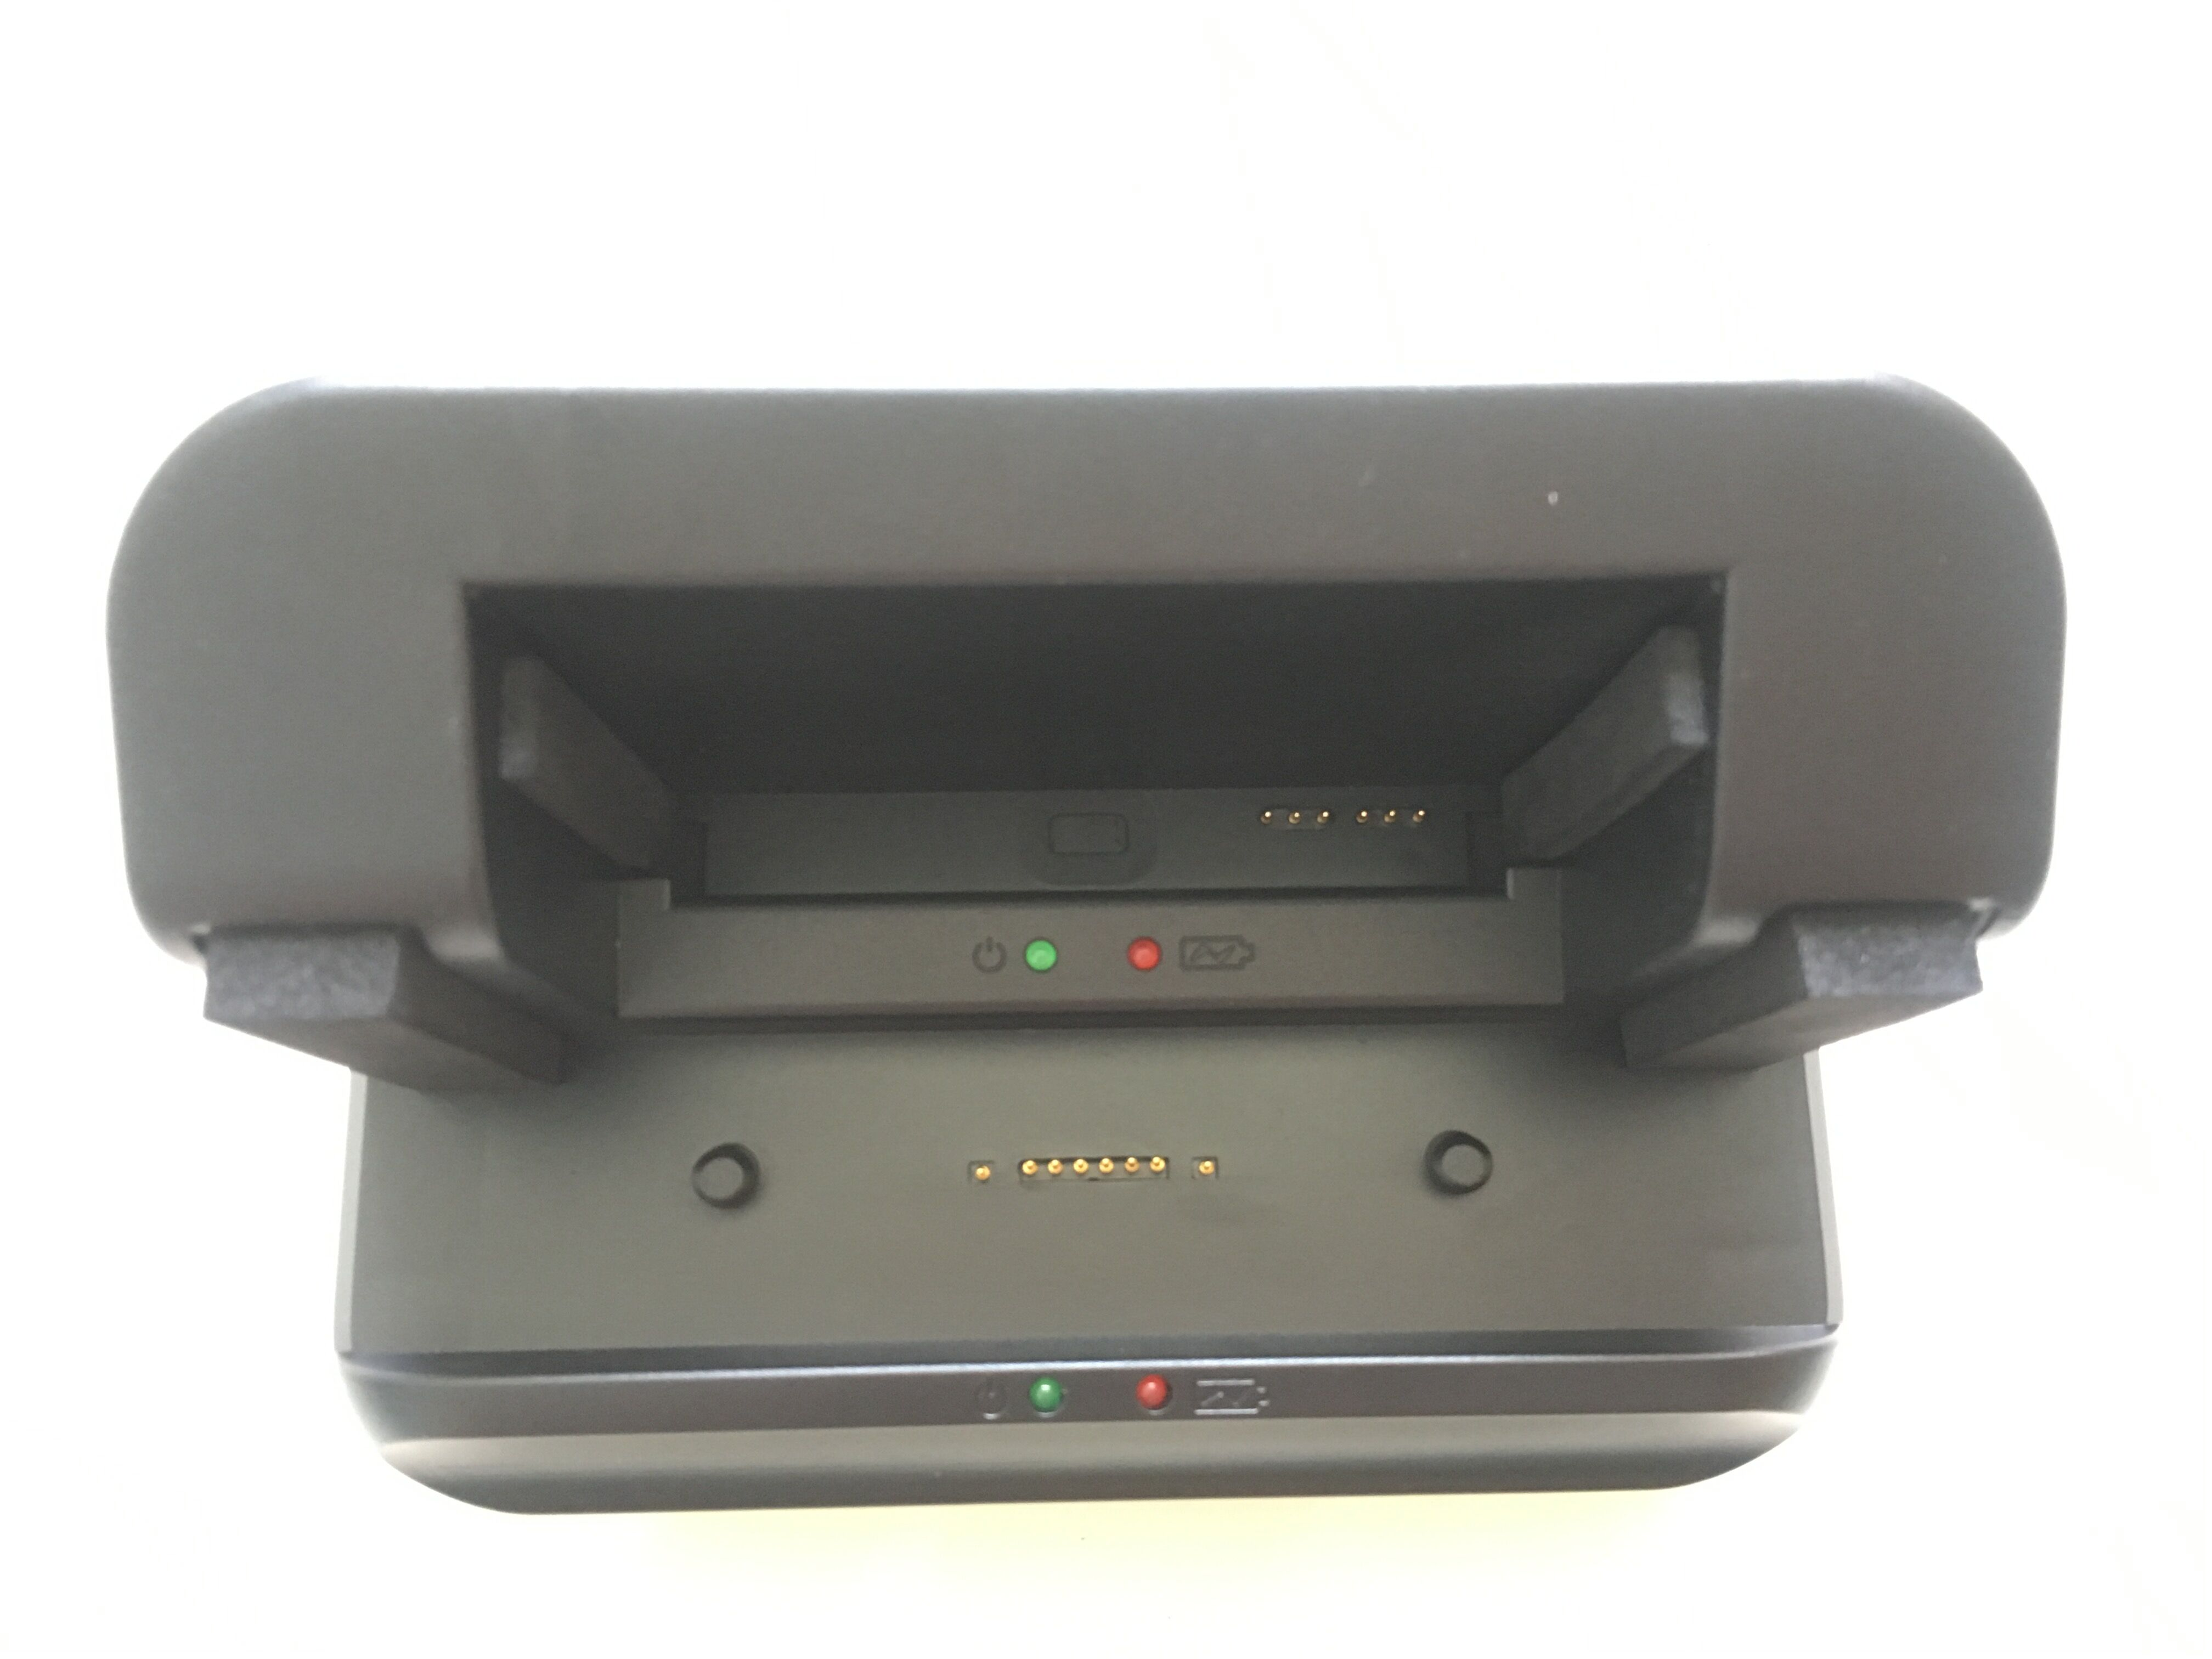 ST11 dedicated with network port USB interface docking station